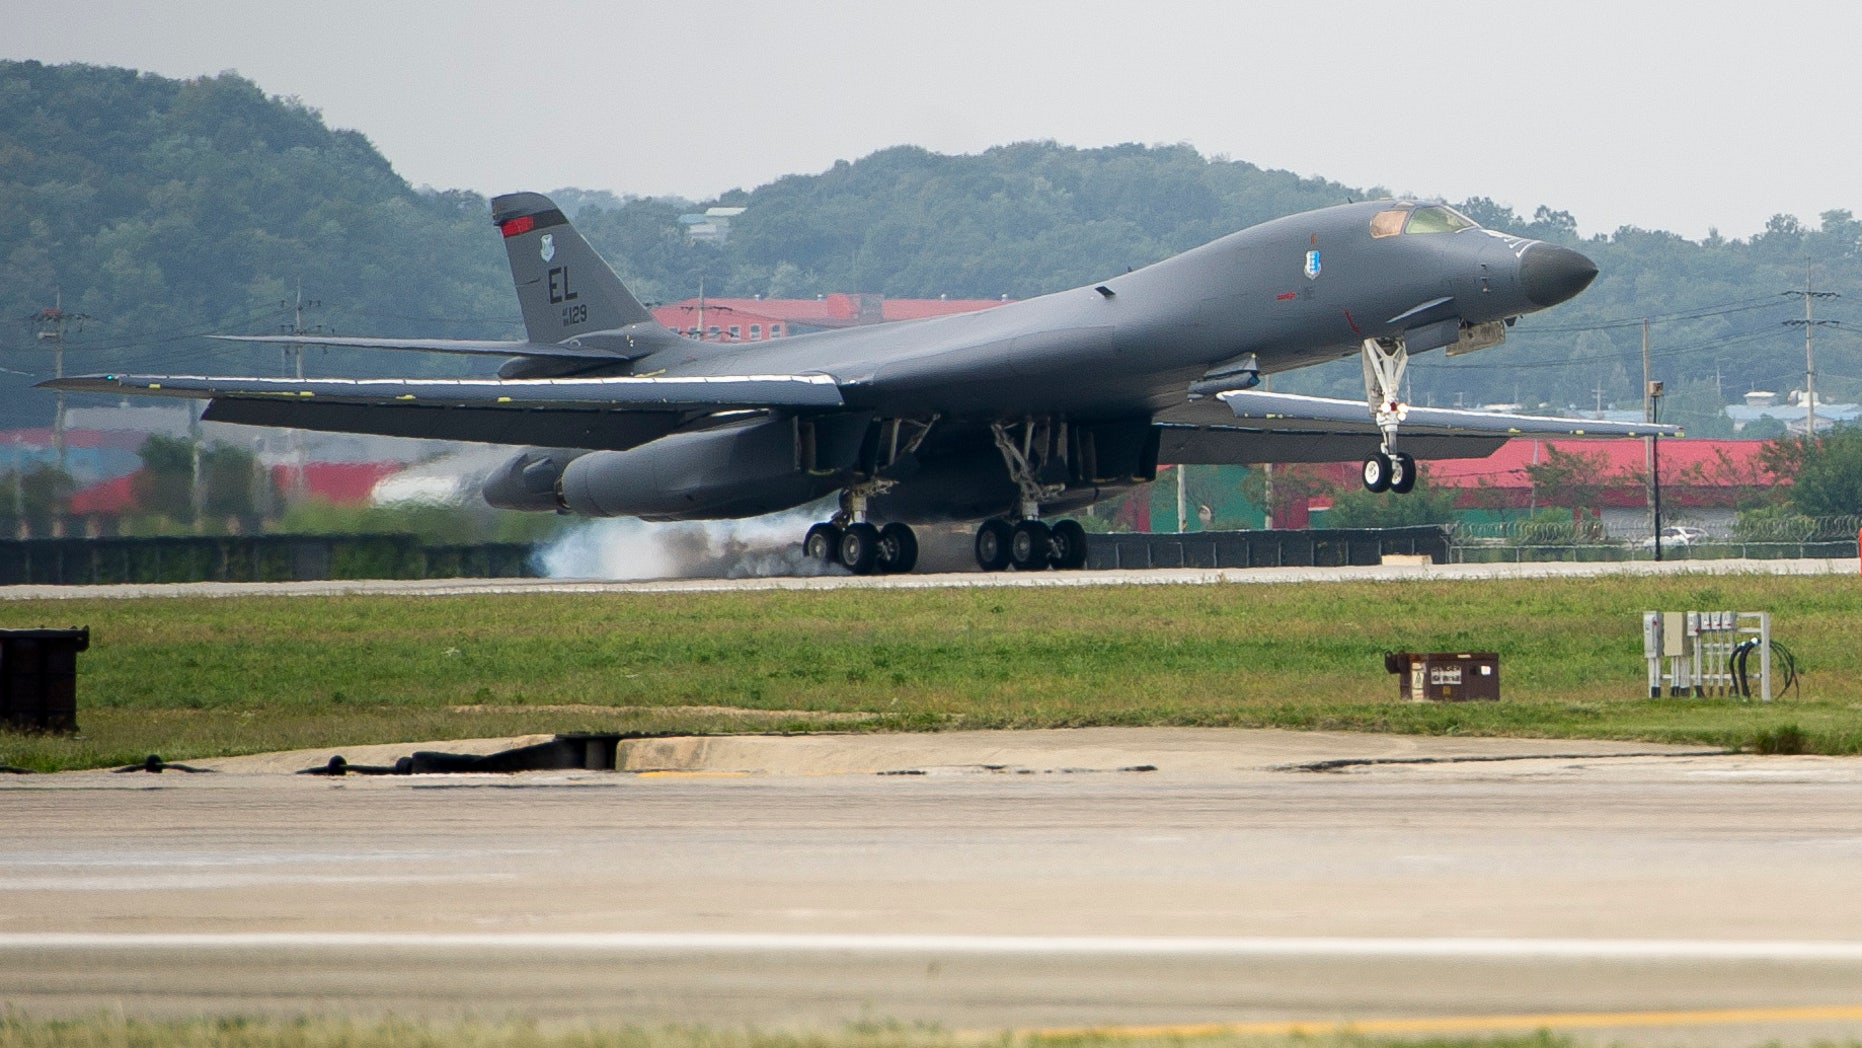 A U.S. Air Force B-1B Lancer landing at Osan Air Base.